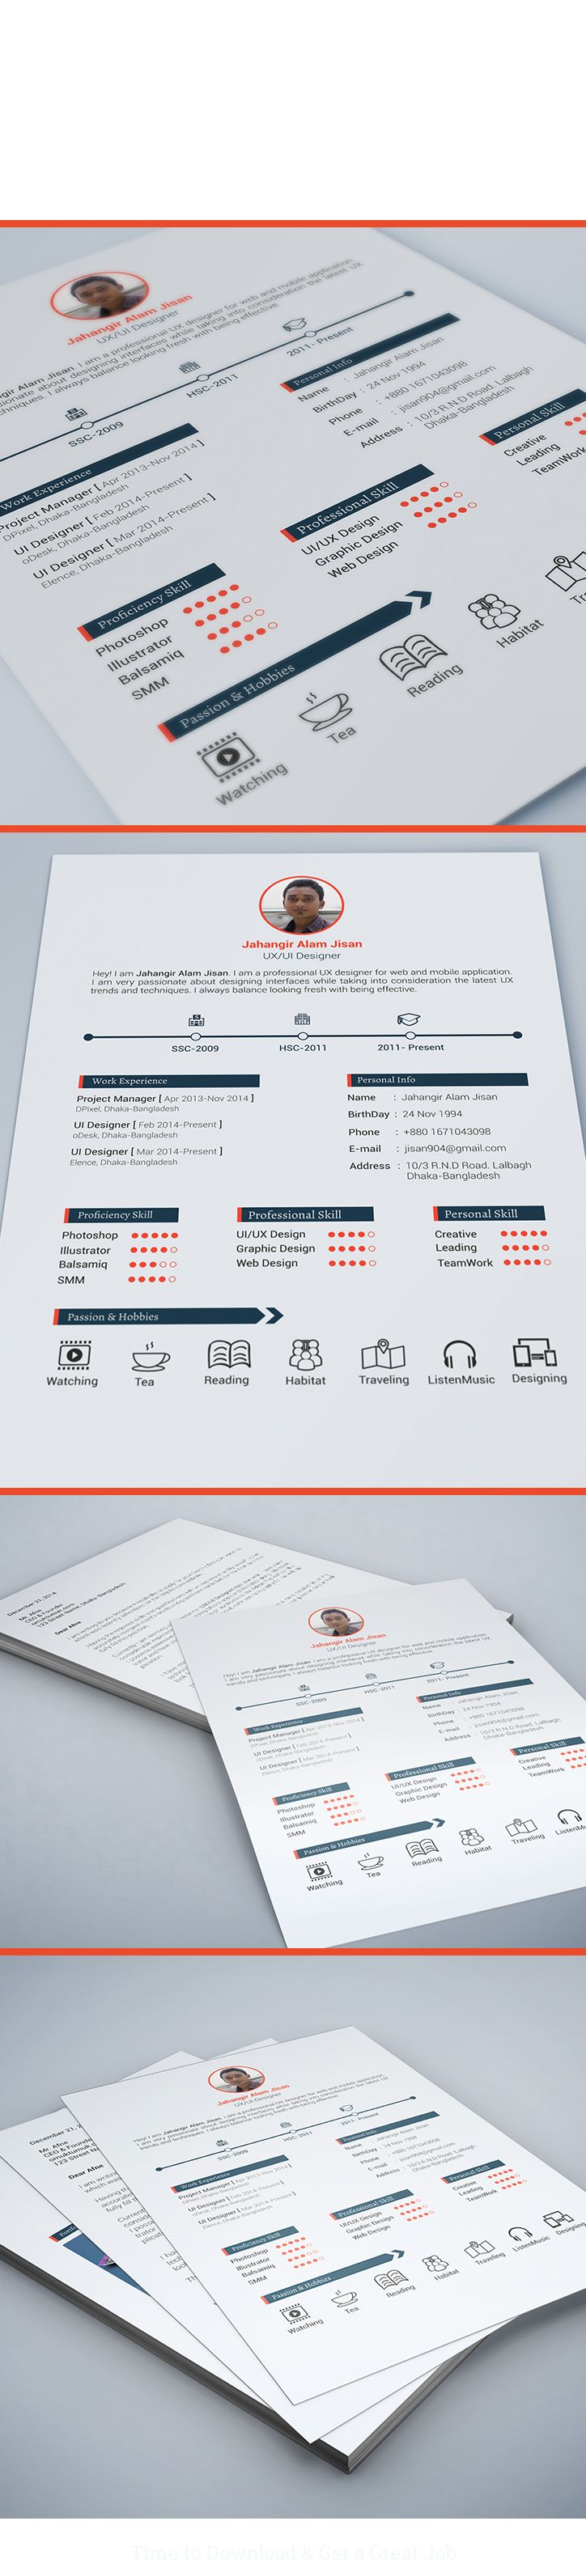 FREE Resume Template (3 page) on Behance